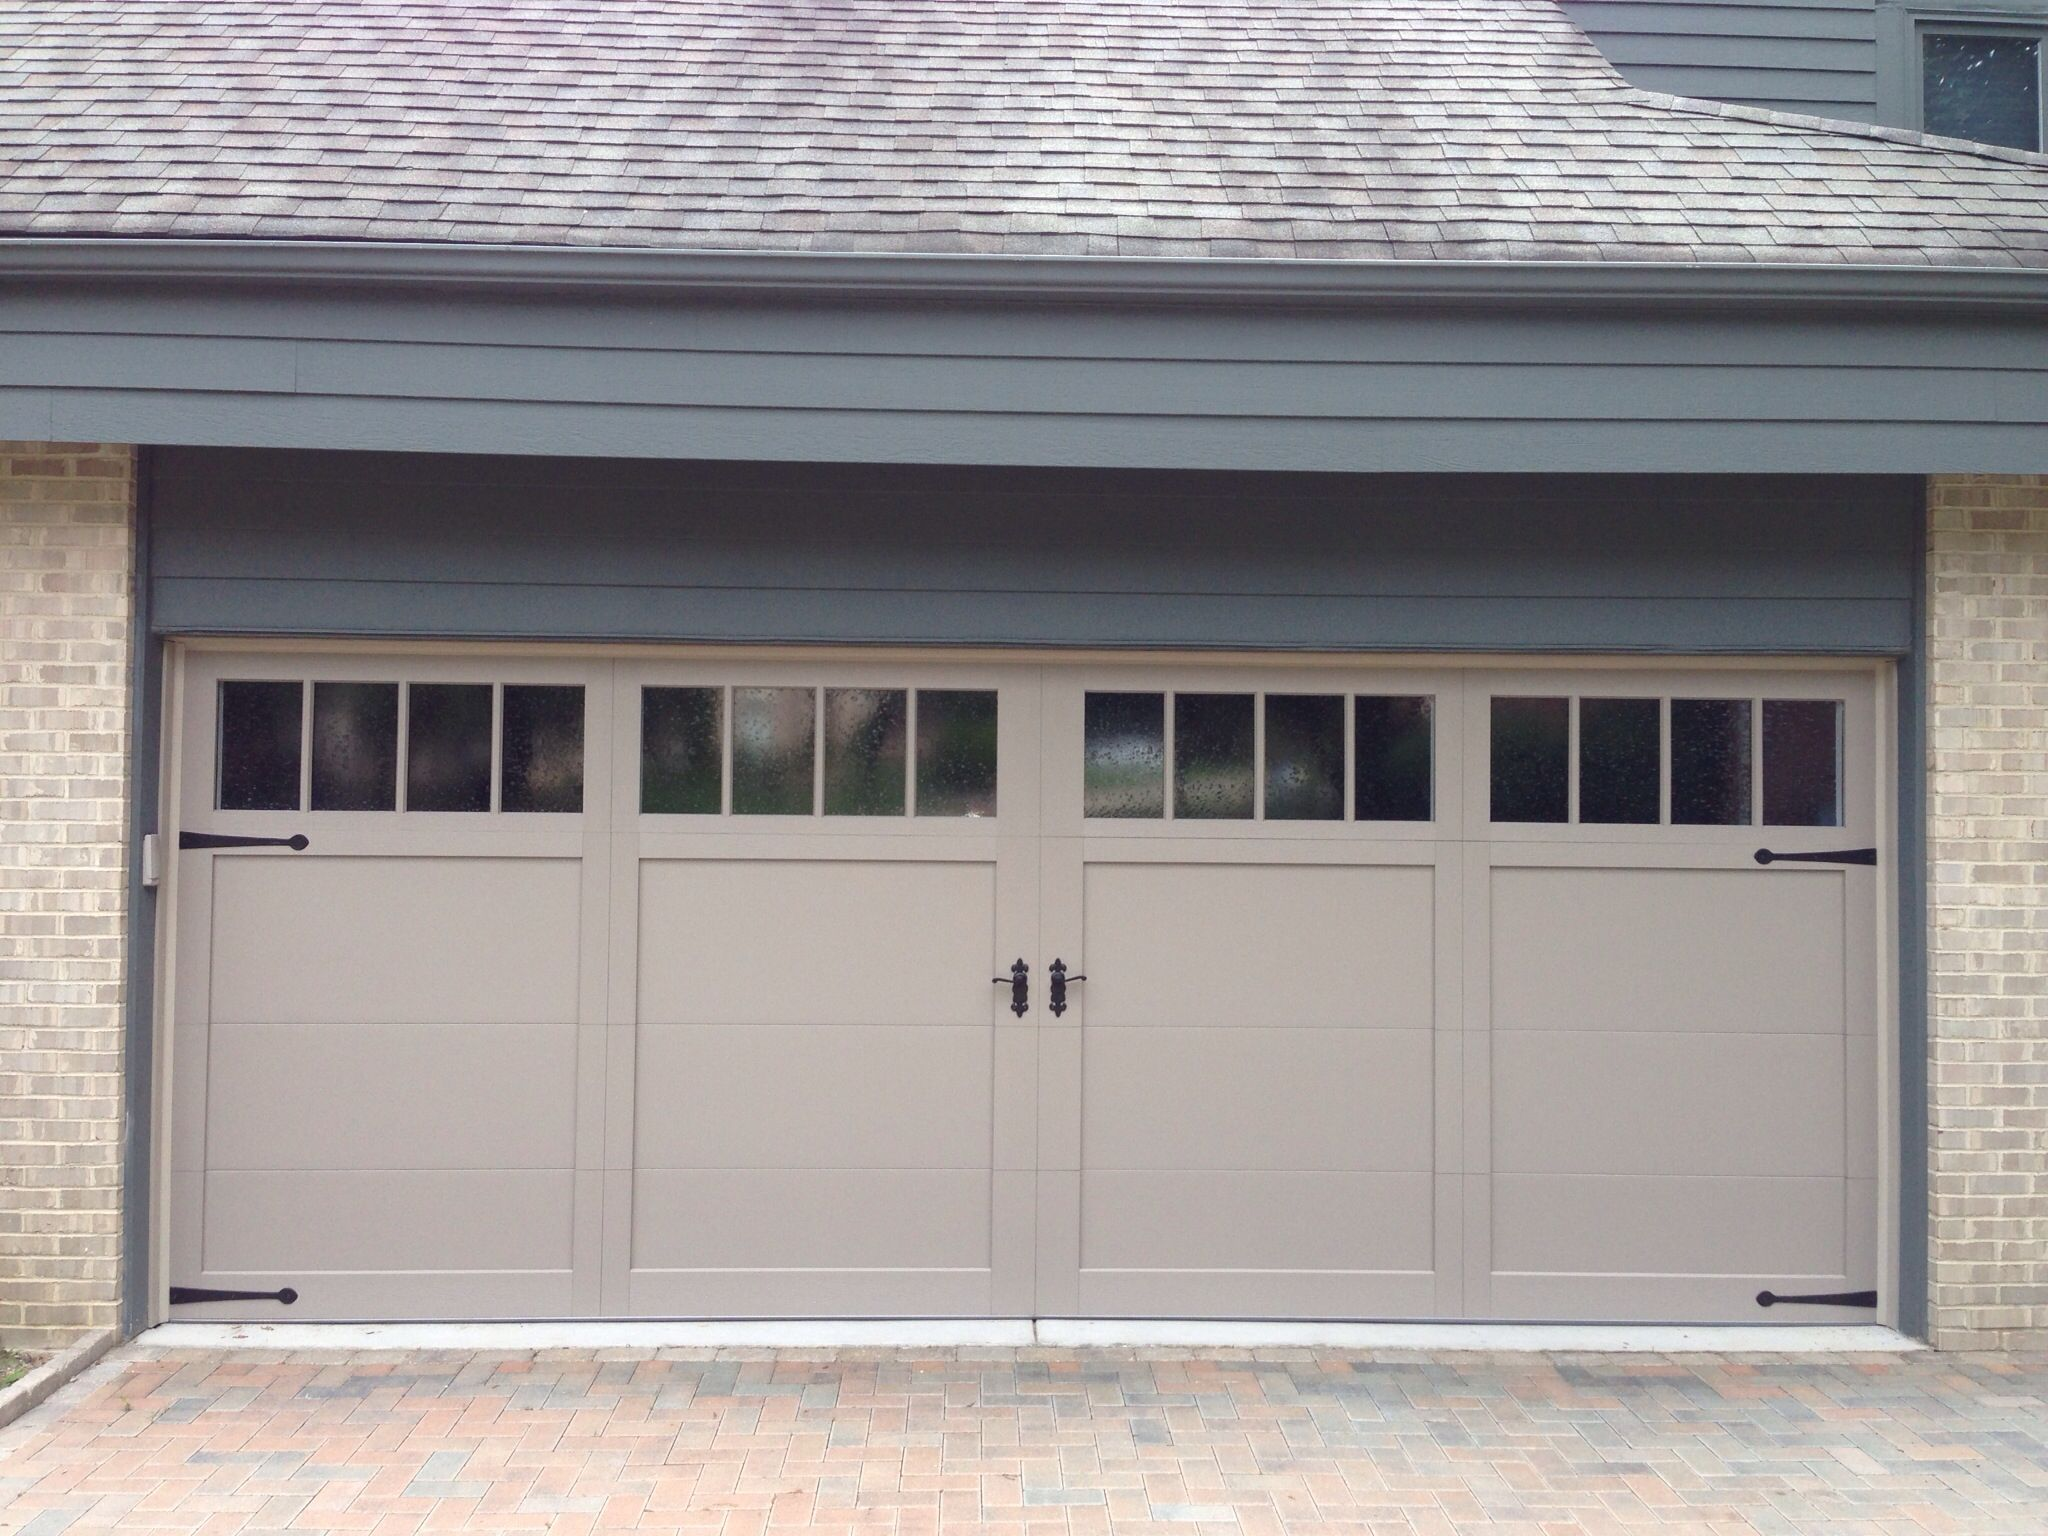 1536 #6B5E4F 18'X 7' Garage Doors 18' X 7' C.H.I. Garage Door Model: 533  pic Garage Doors Colors 37512048